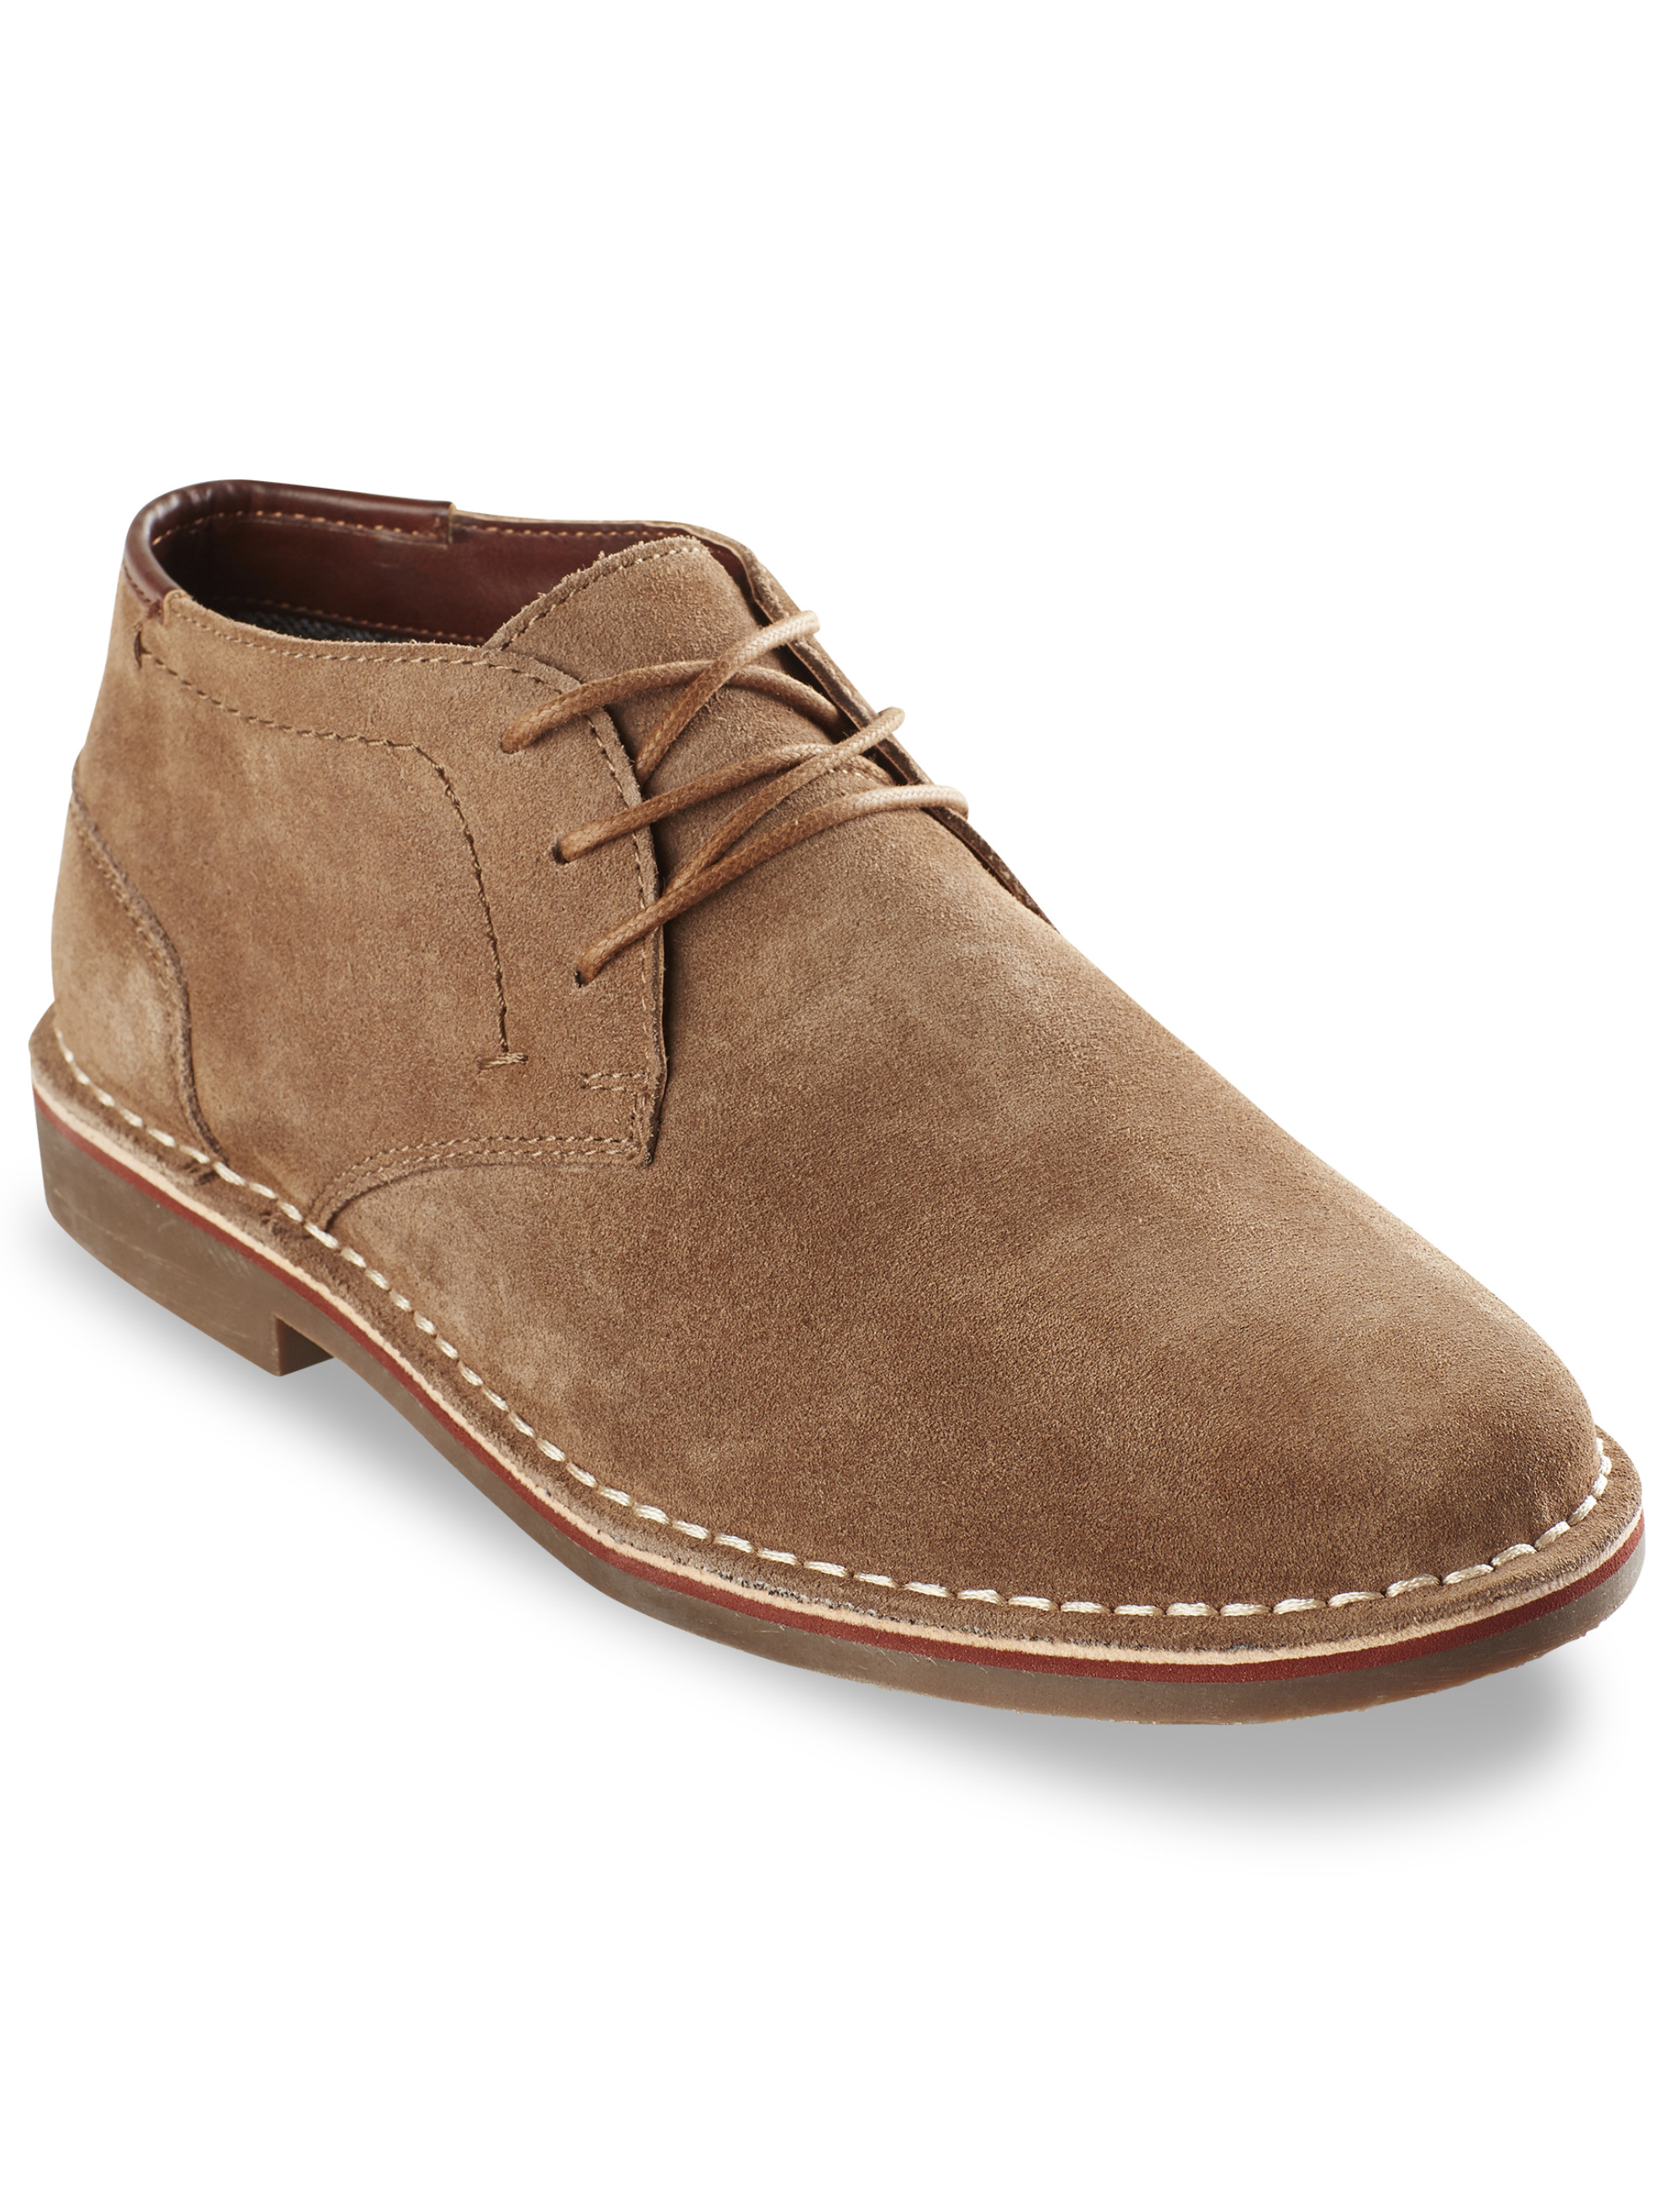 Unlisted® by Kenneth Cole Desert Boots